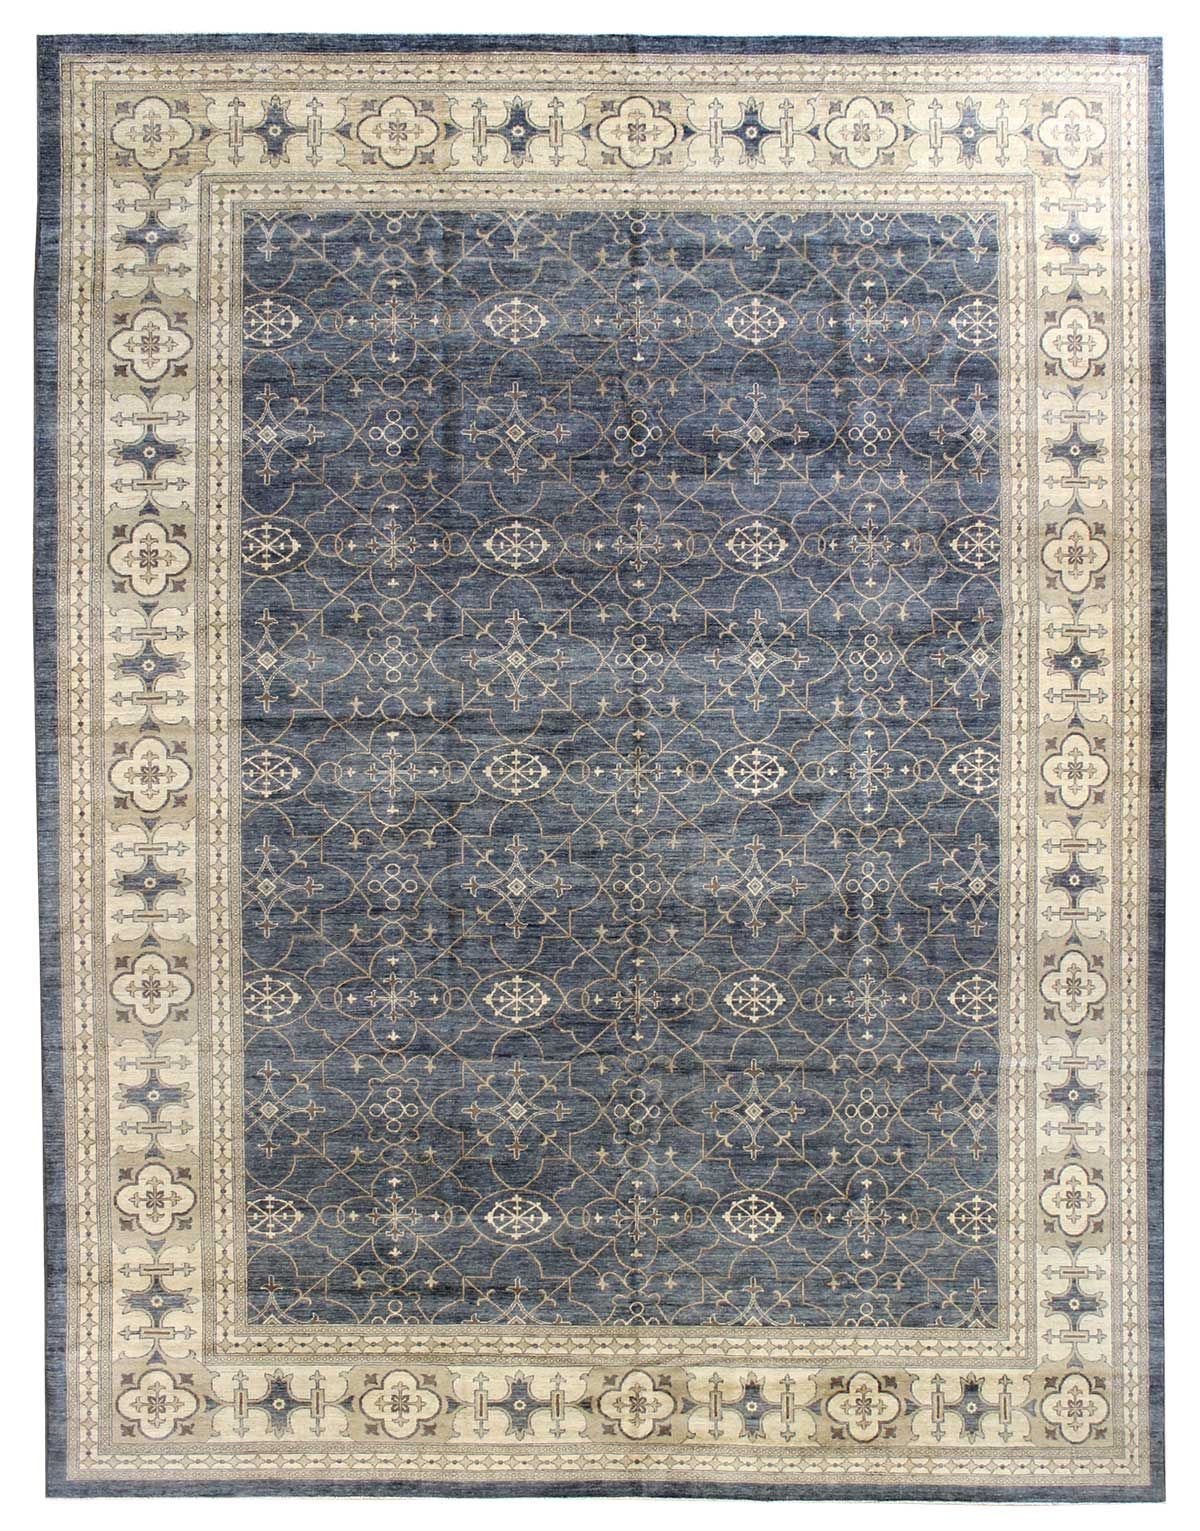 Khotan Handwoven Traditional Rug